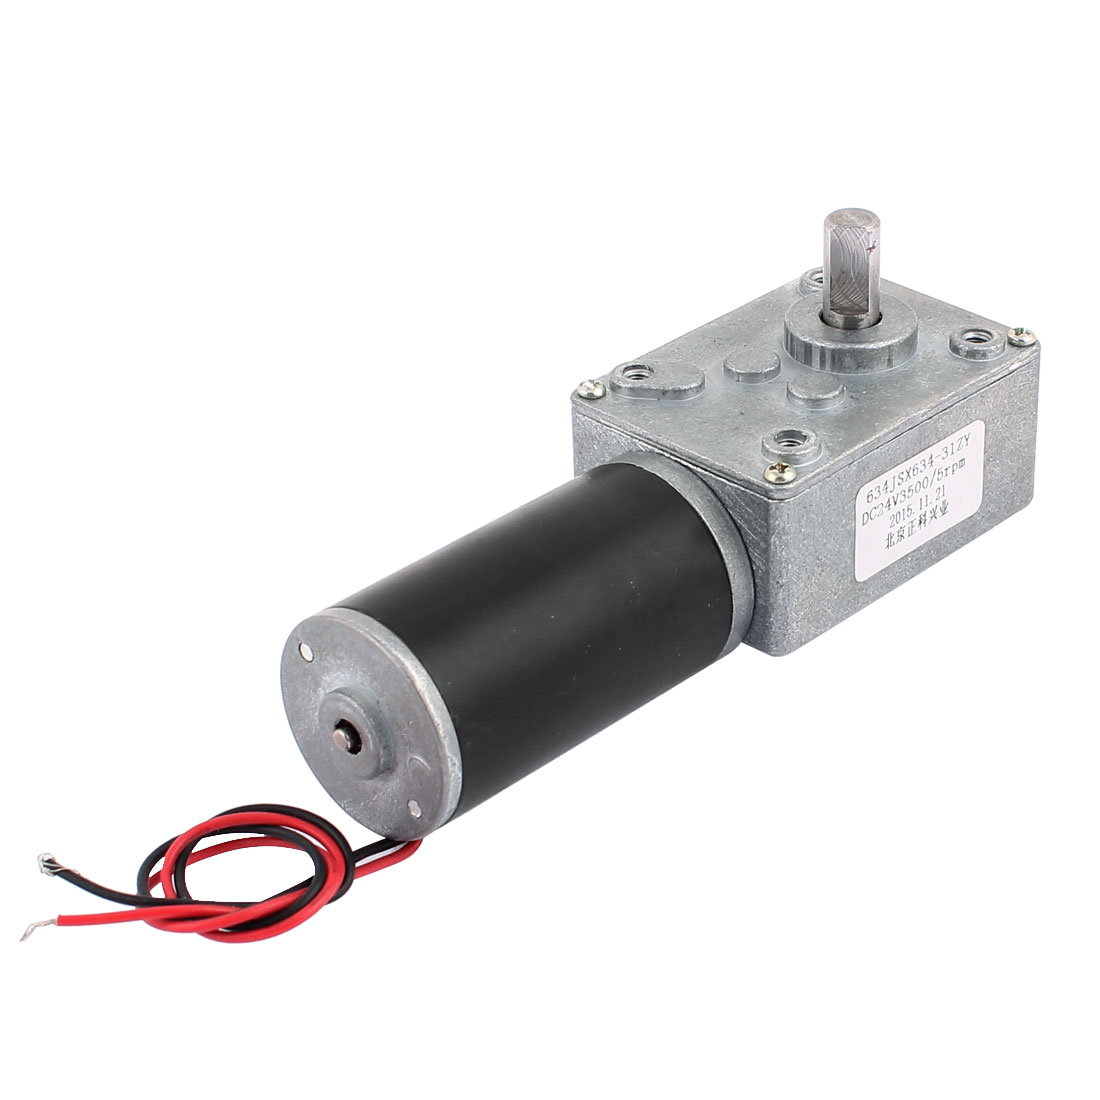 DC 24V 5RPM 8mmx14mm D-Shape Shaft Electric Power Turbo Worm Geared Motor